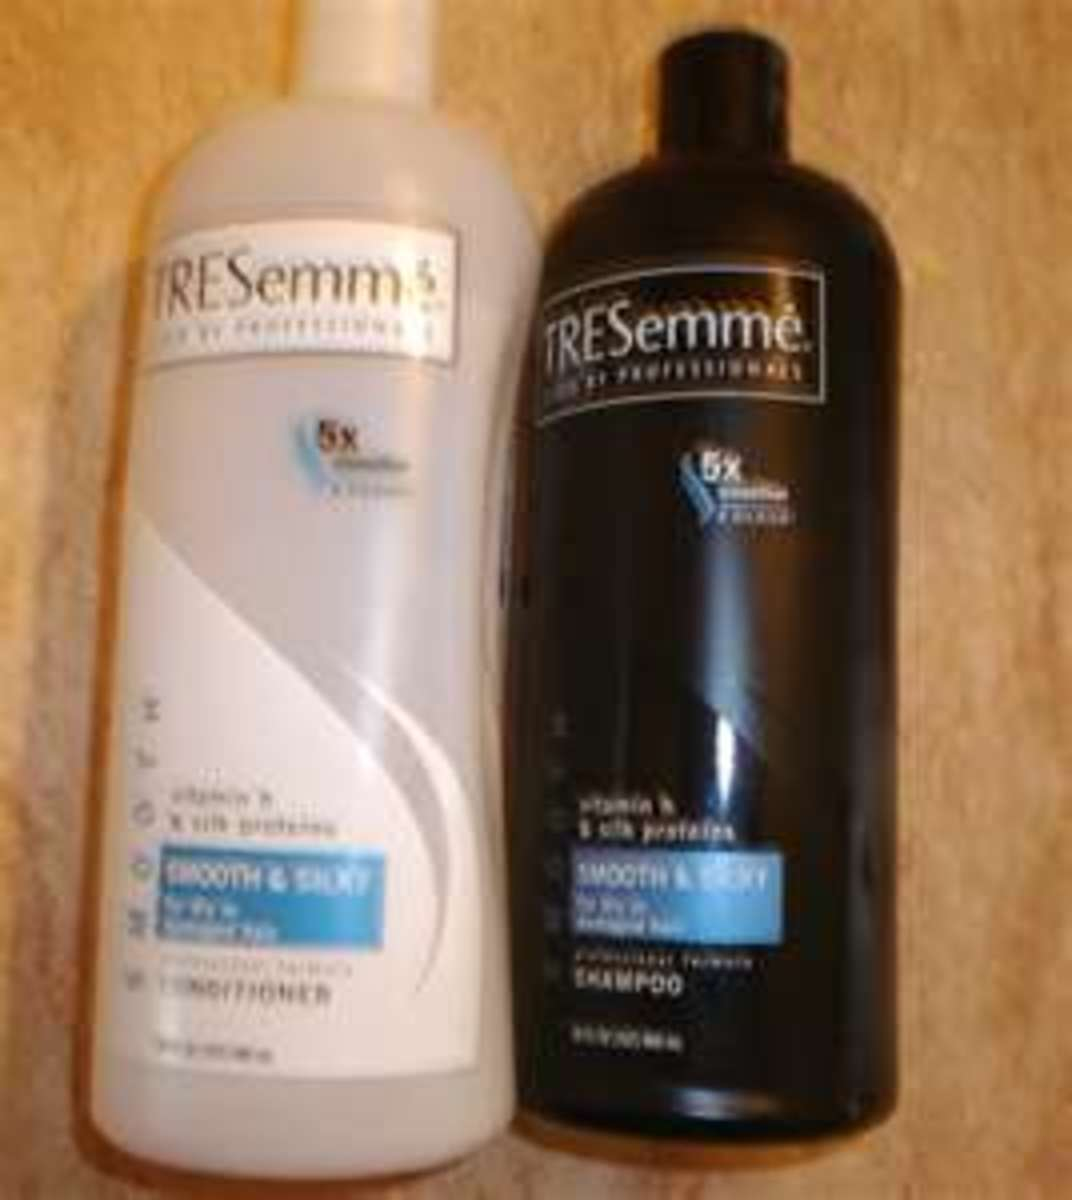 TreSemme Smooth and Silky Shampoo and Conditioner. I have tried just about every shampoo and conditioner and these two are the best for curly hair. It makes it SO soft and smooth, and makes hair stronger over time.